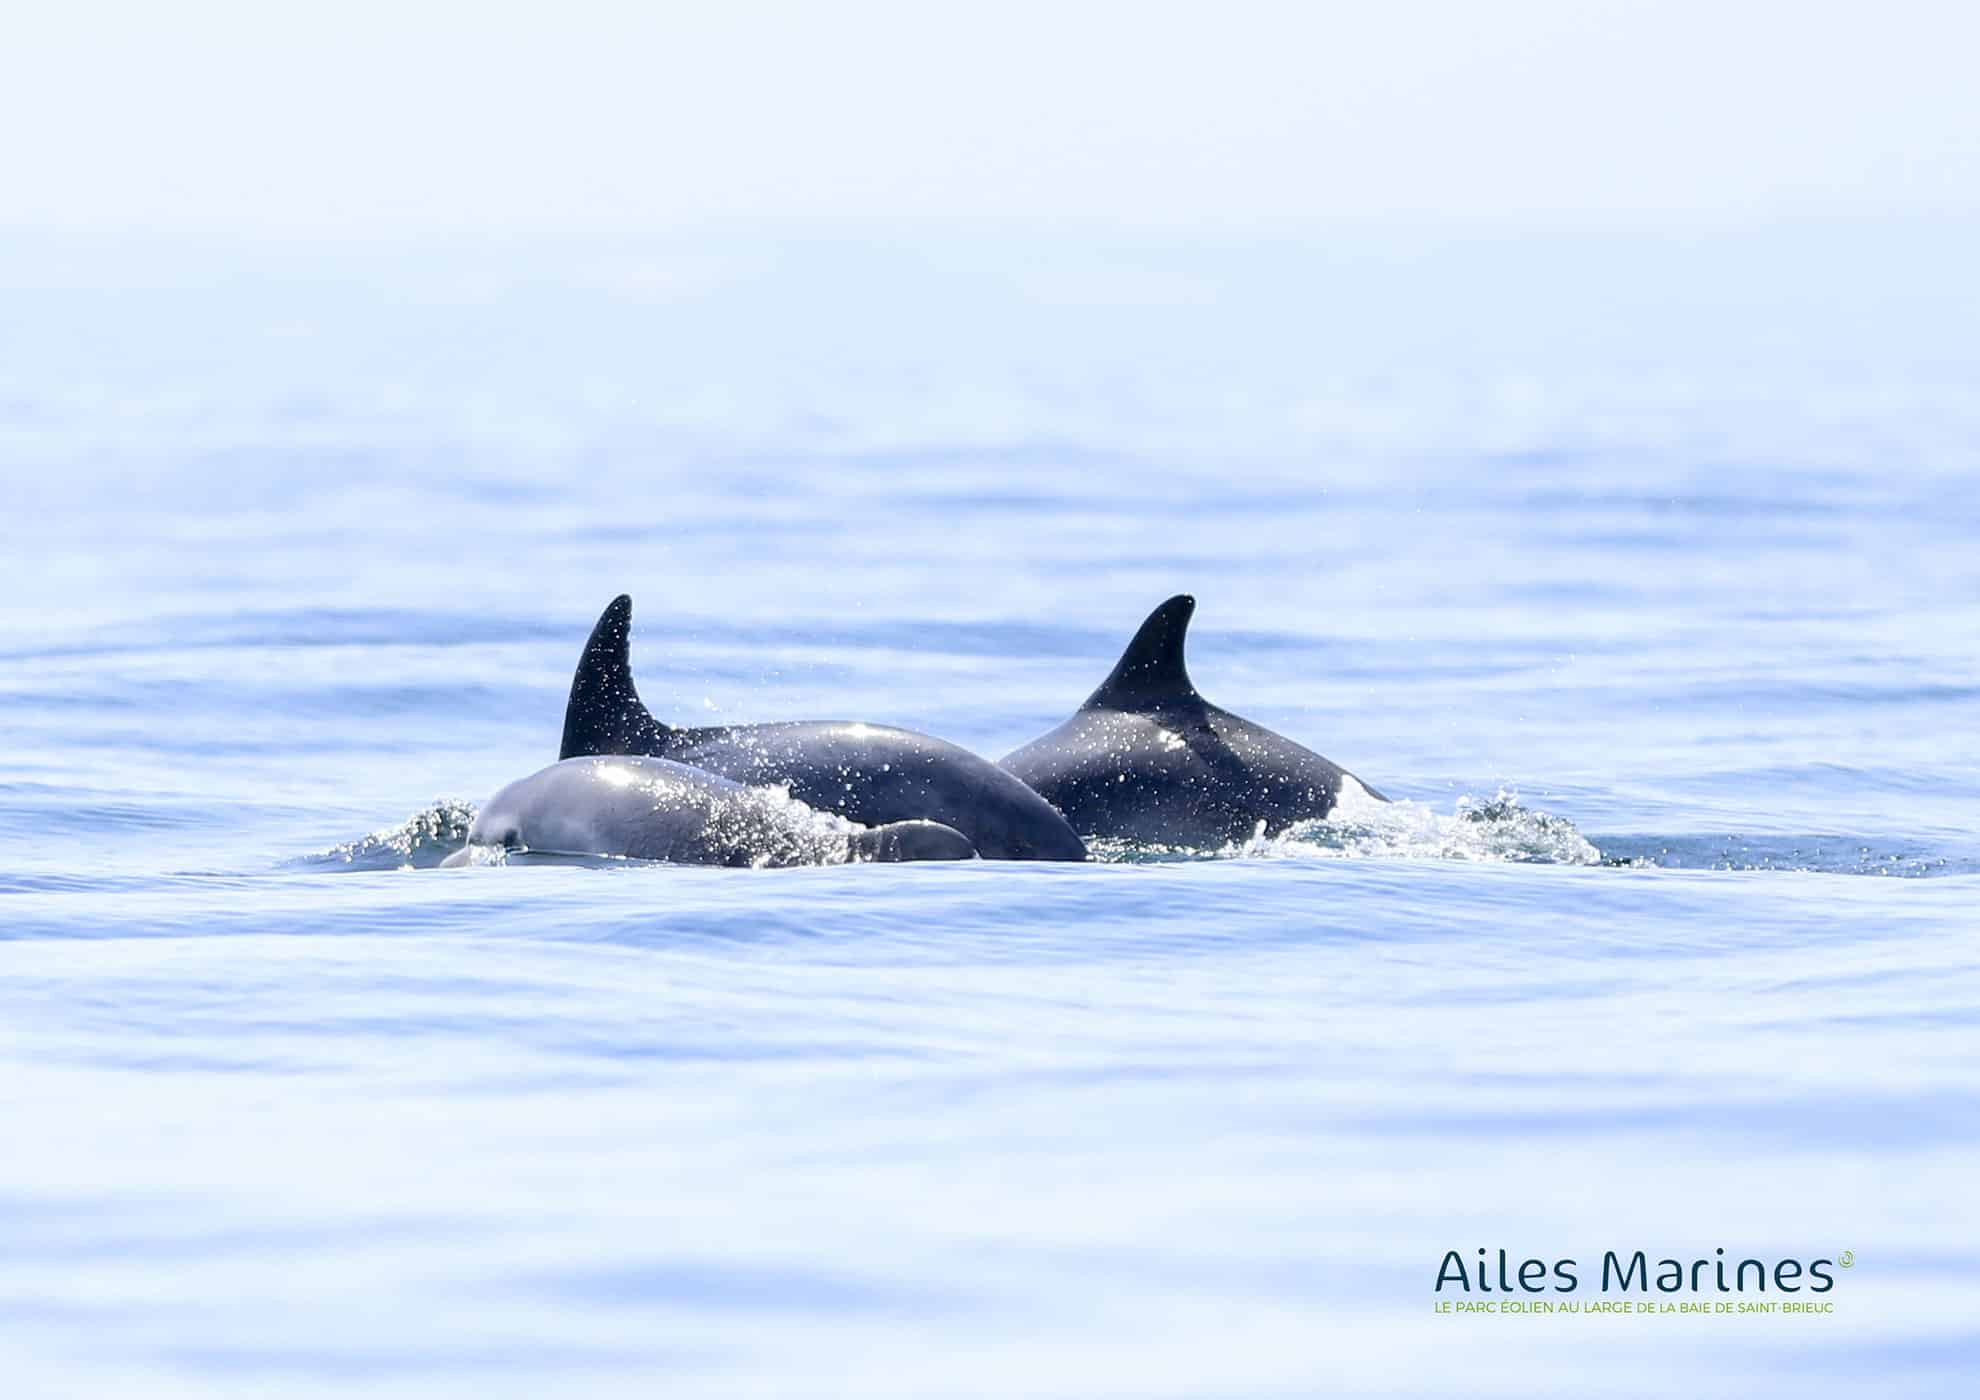 ailes-marines-groupe-de-dauphins